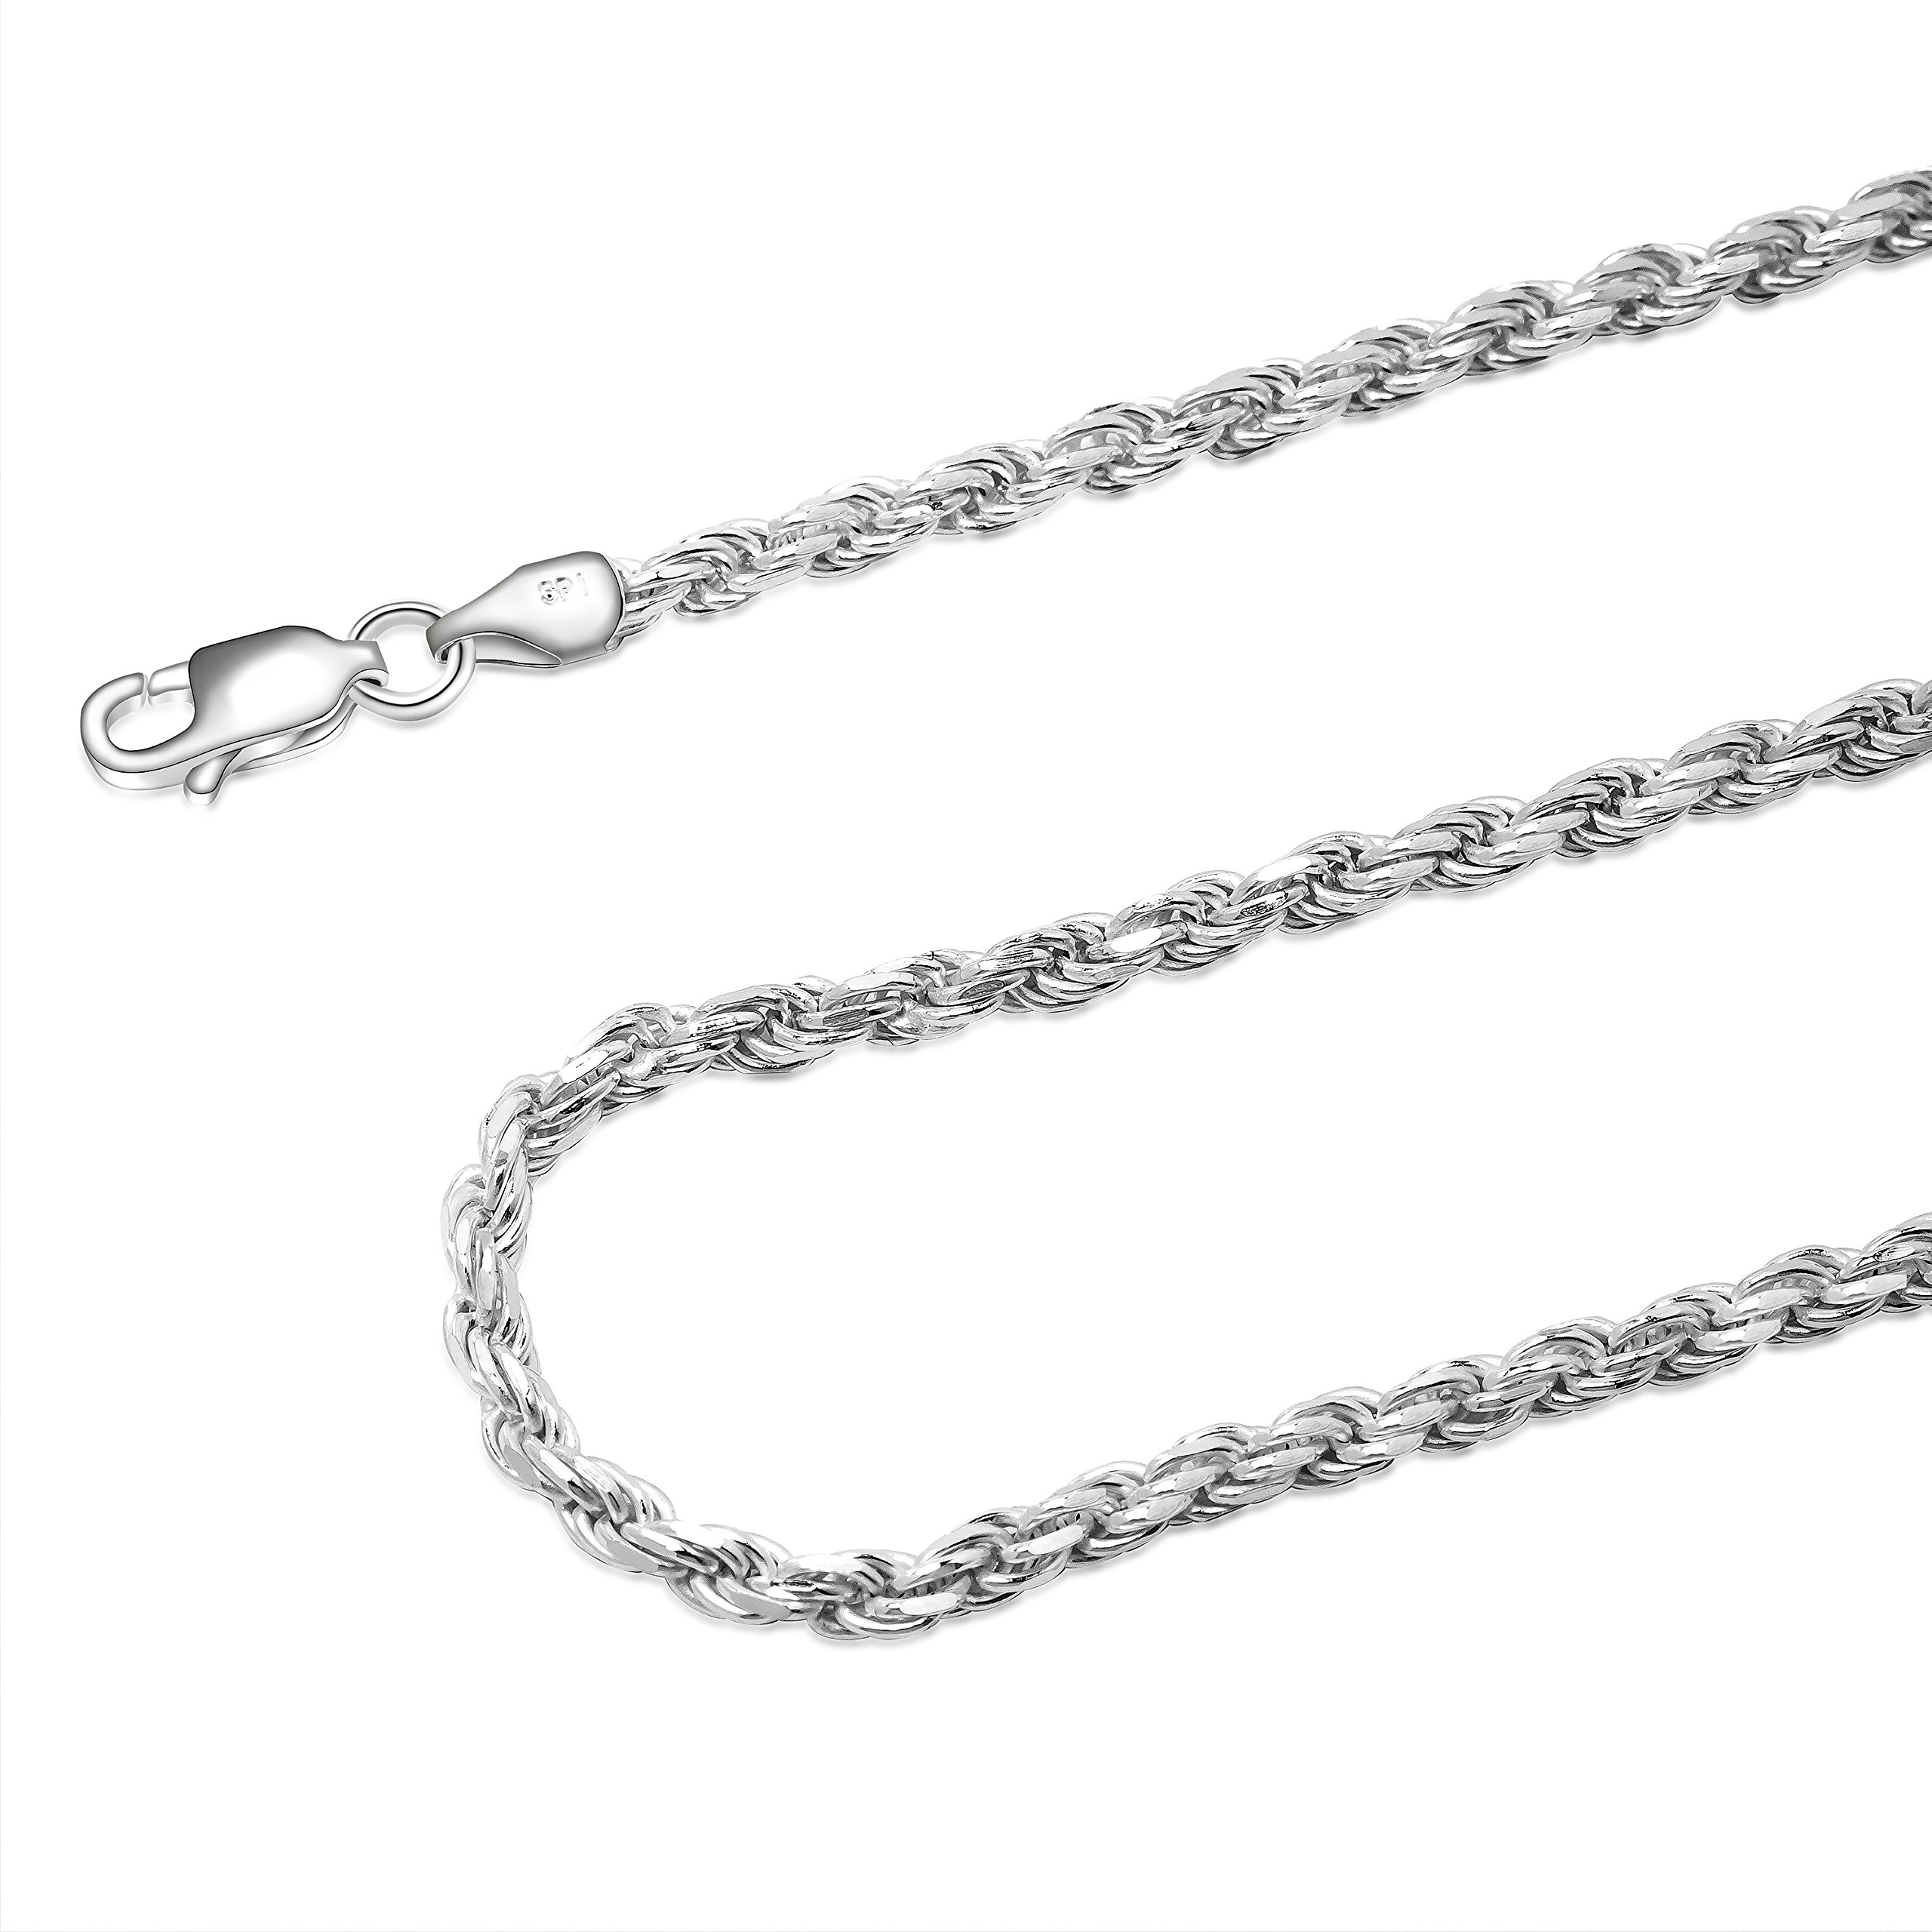 925 Sterling Silver 3MM Rope Chain Lobster Claw Clasp - 24'' by Designer Sterling Silver (Image #6)